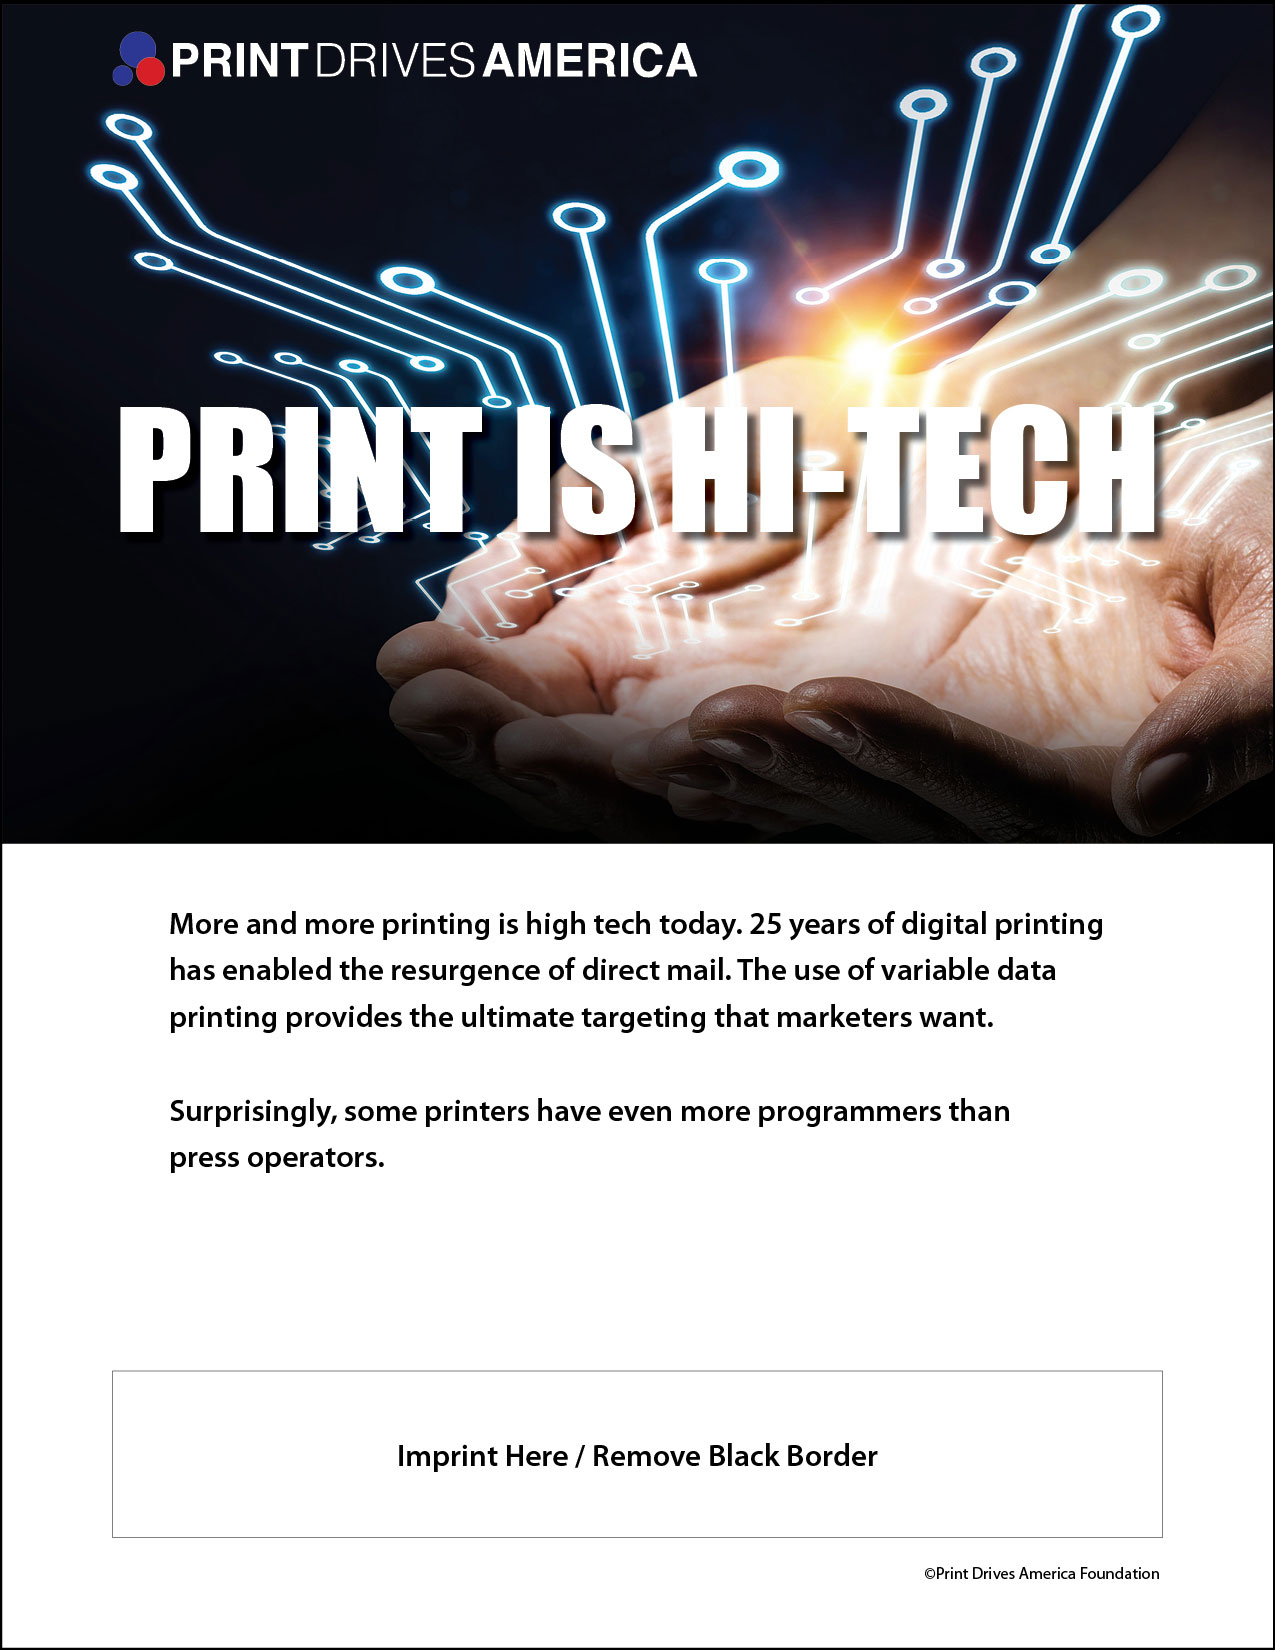 Print is Hi-Tech